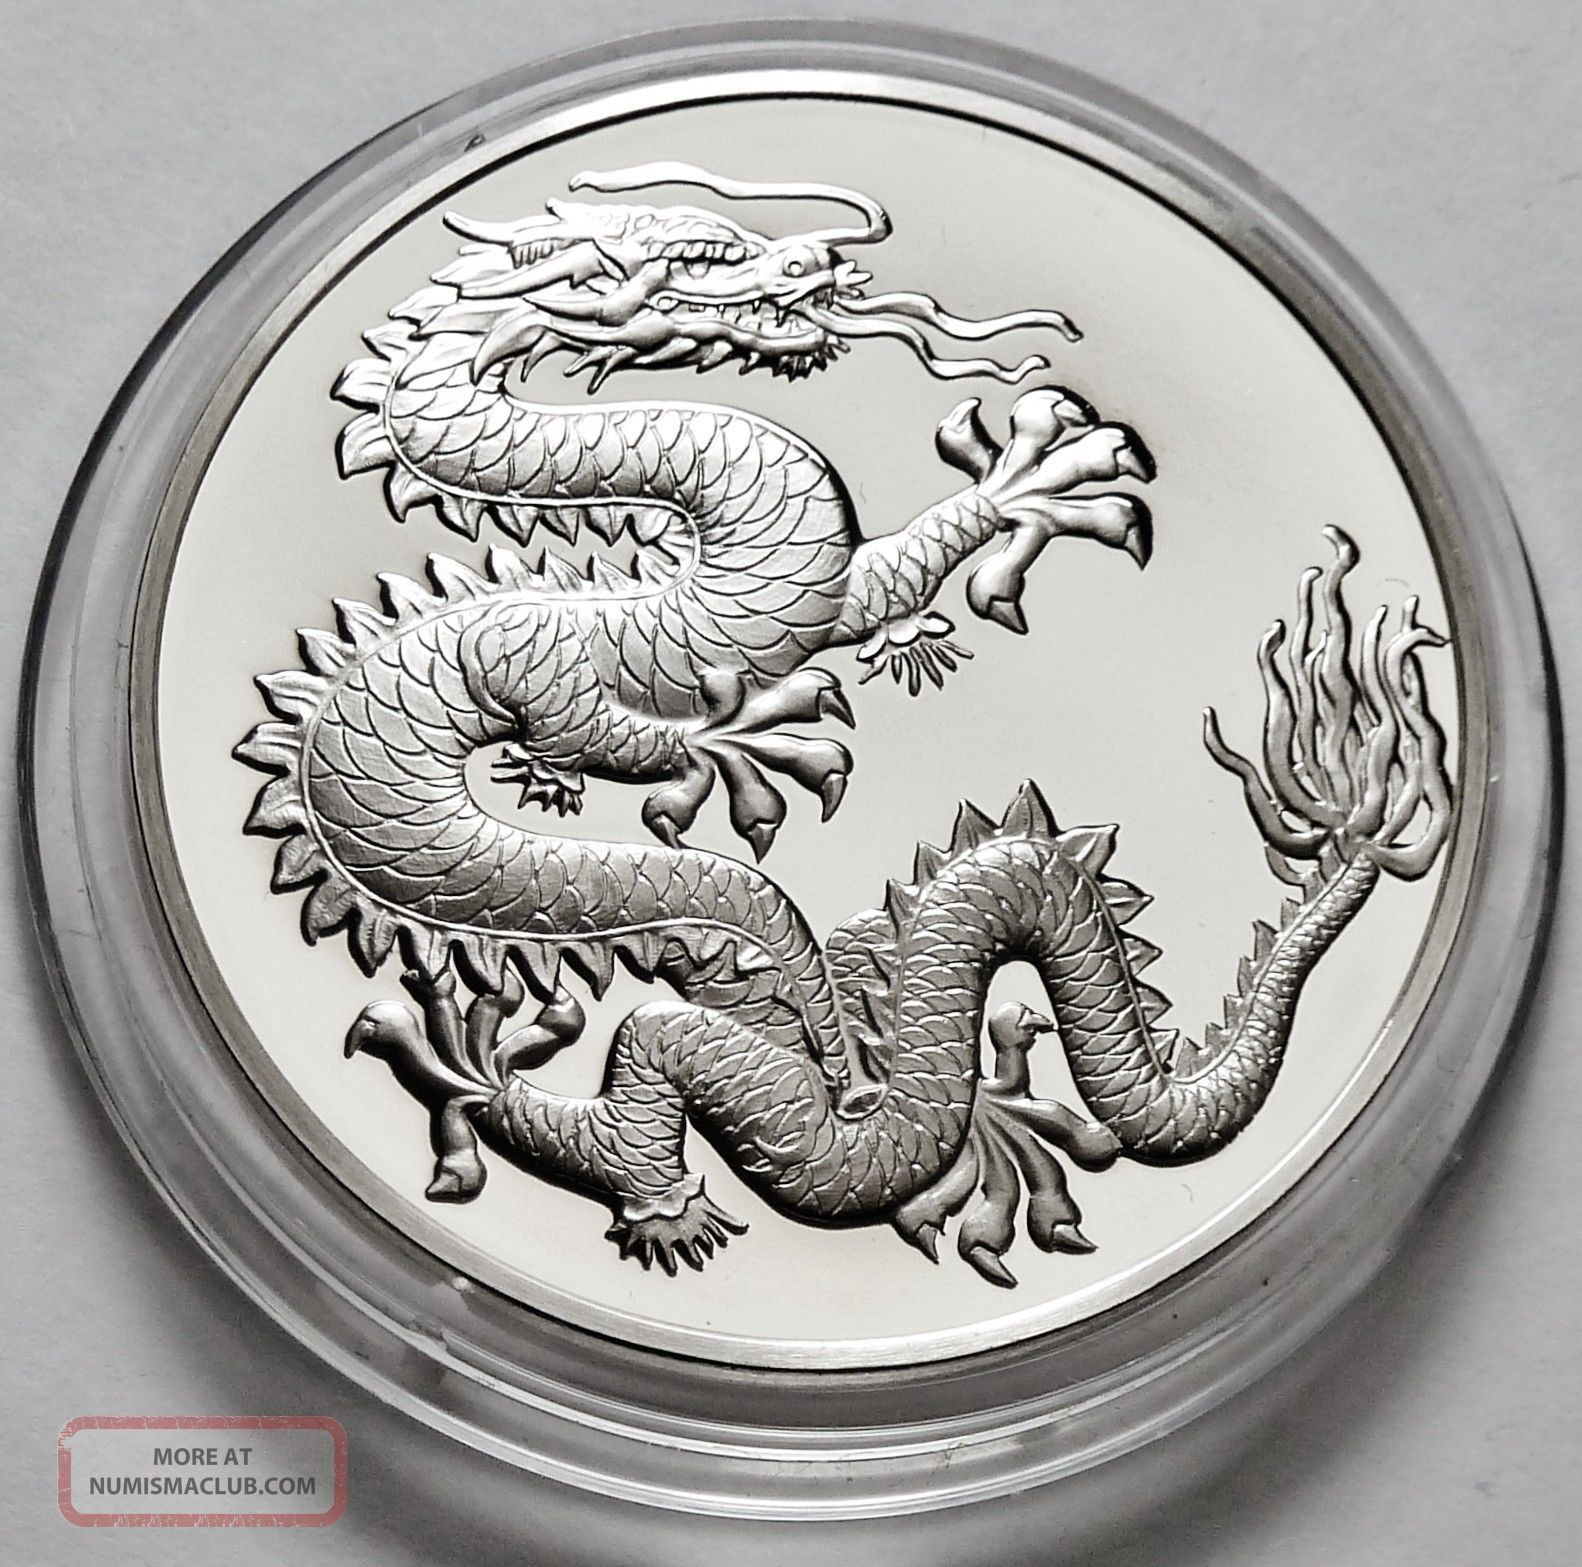 Dragon Good Luck Symbol Sterling Silver Coin Round Franklin